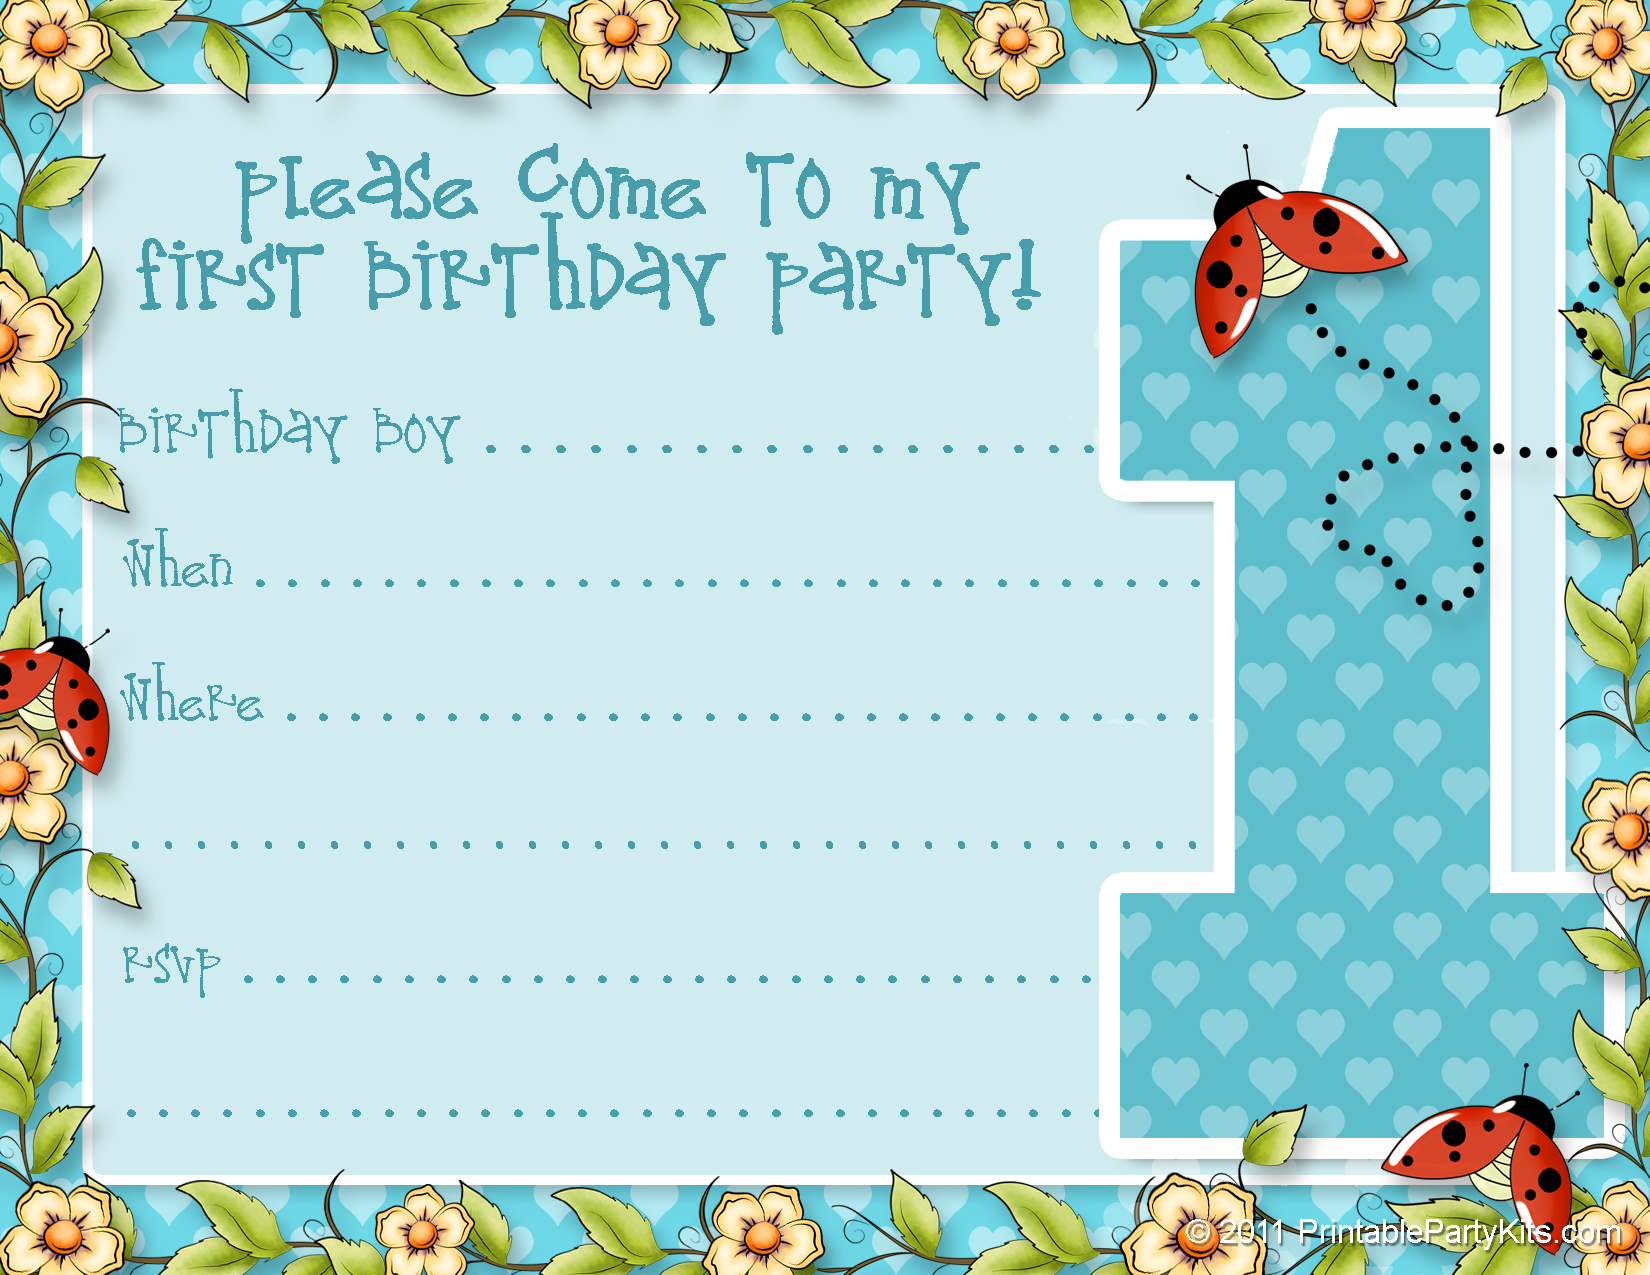 50 Free Birthday Invitation Templates You Will Love These – Invitations Birthday Party Free Printable